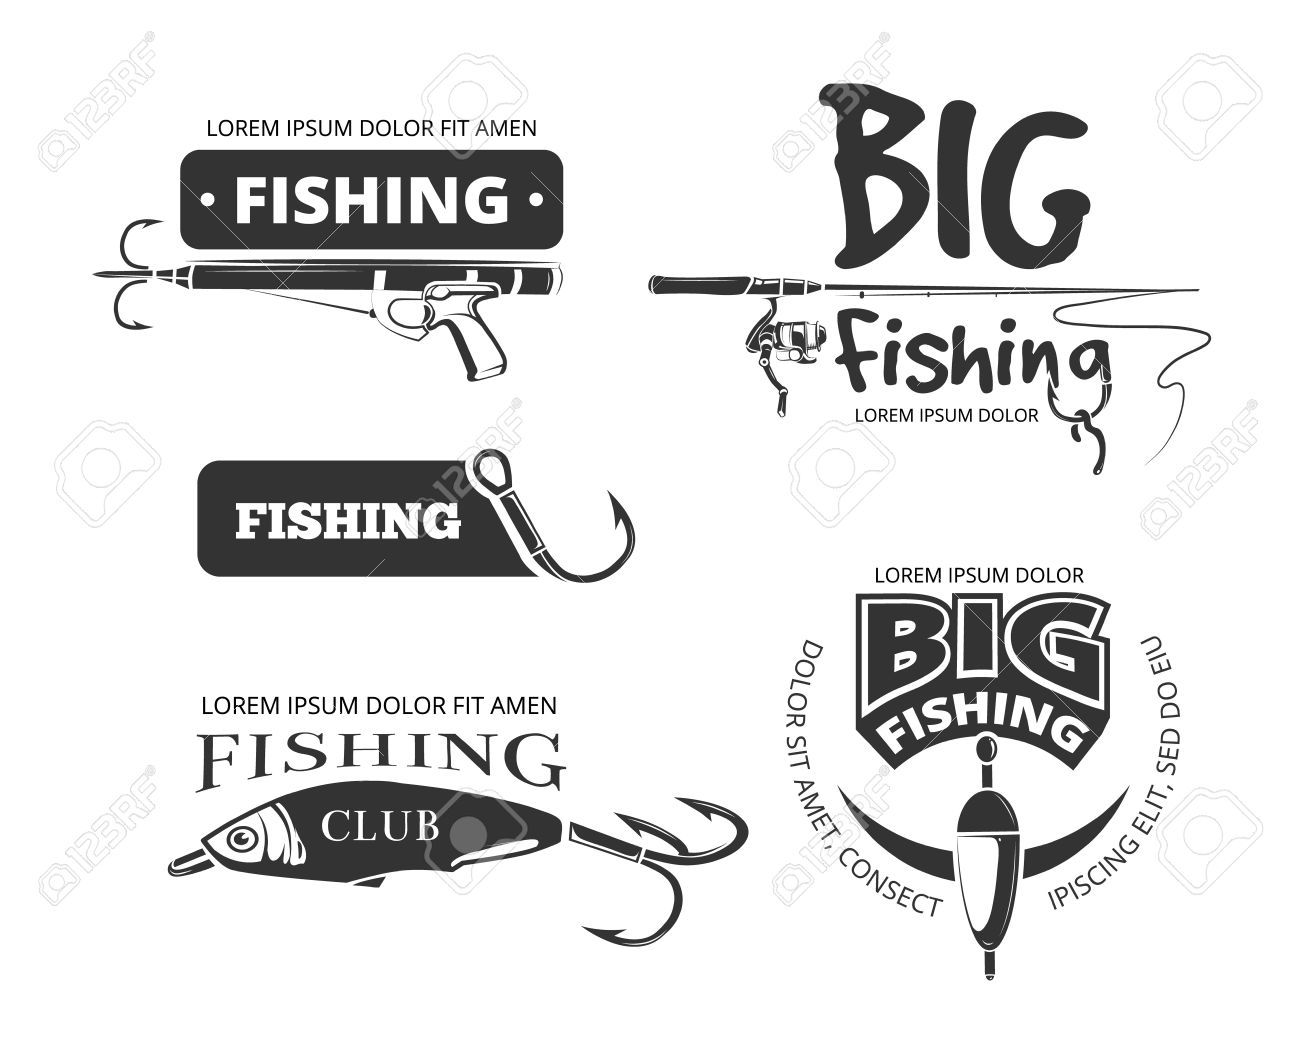 Retro fishing club vector badges, labels, logos, emblems. Label and icon for fishing club, catch fish and outfit for fishing illustration - 57185129